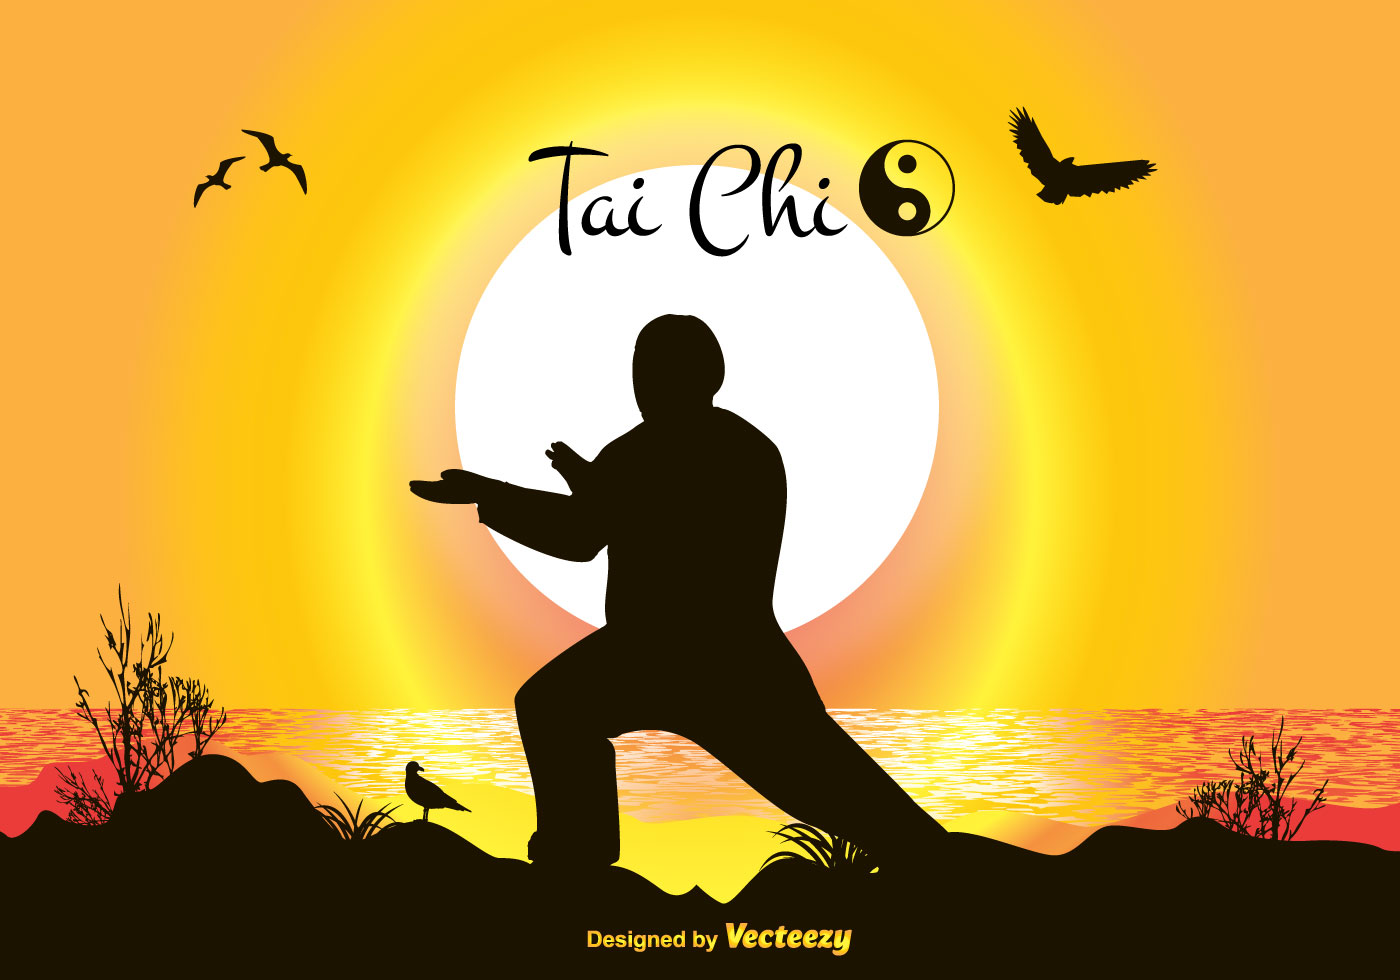 60 Top Tai Chi O Pictures Photos & Images - Getty Images